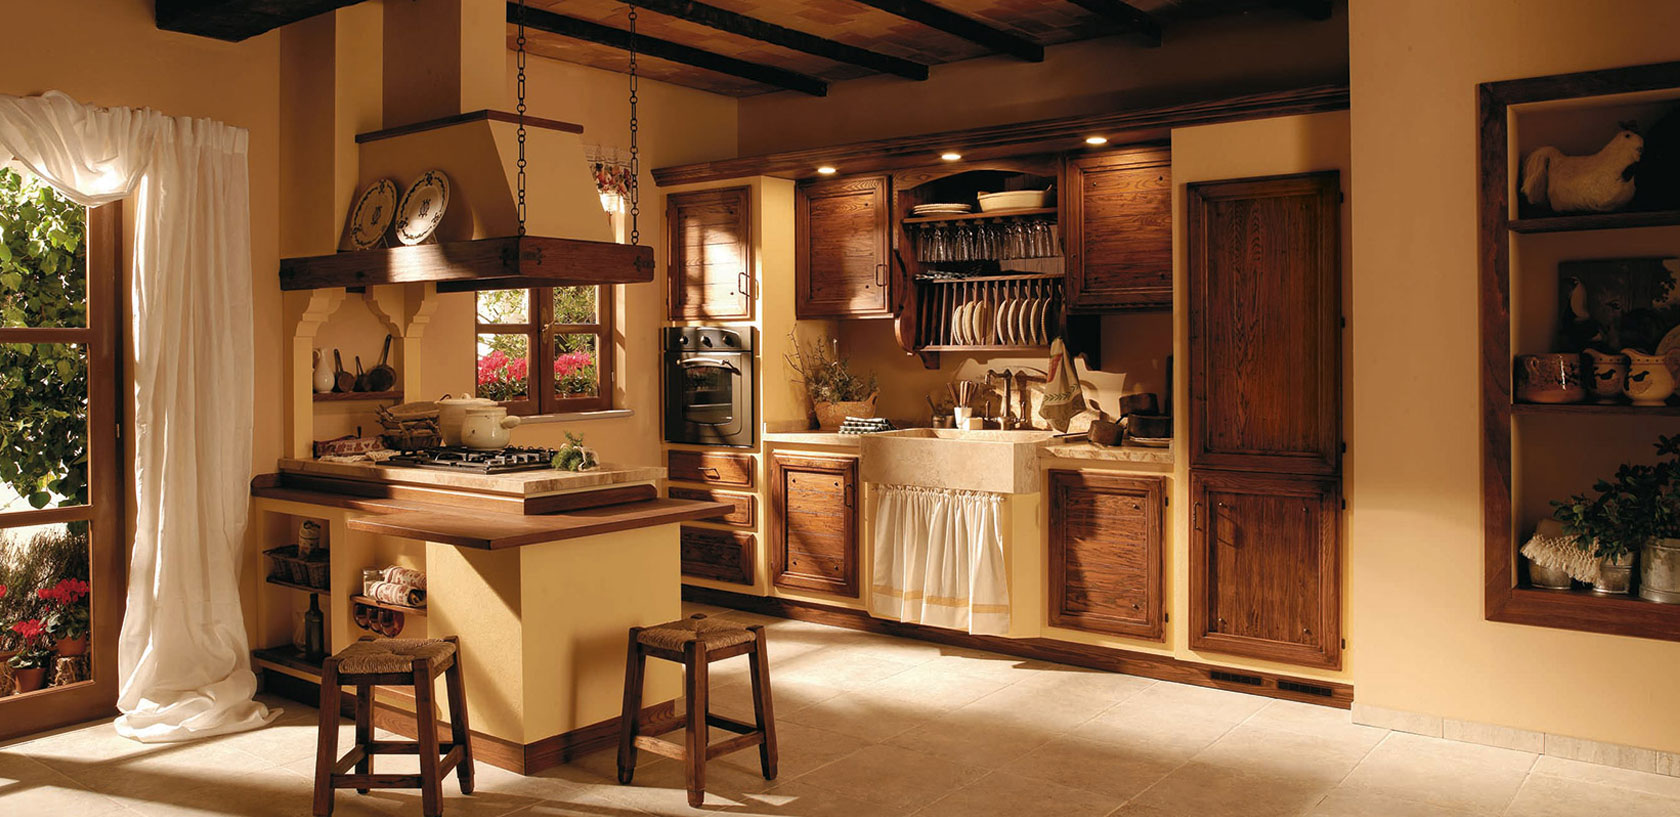 Cucine Country Legno Massello Cucine Country Chic Zappalorto